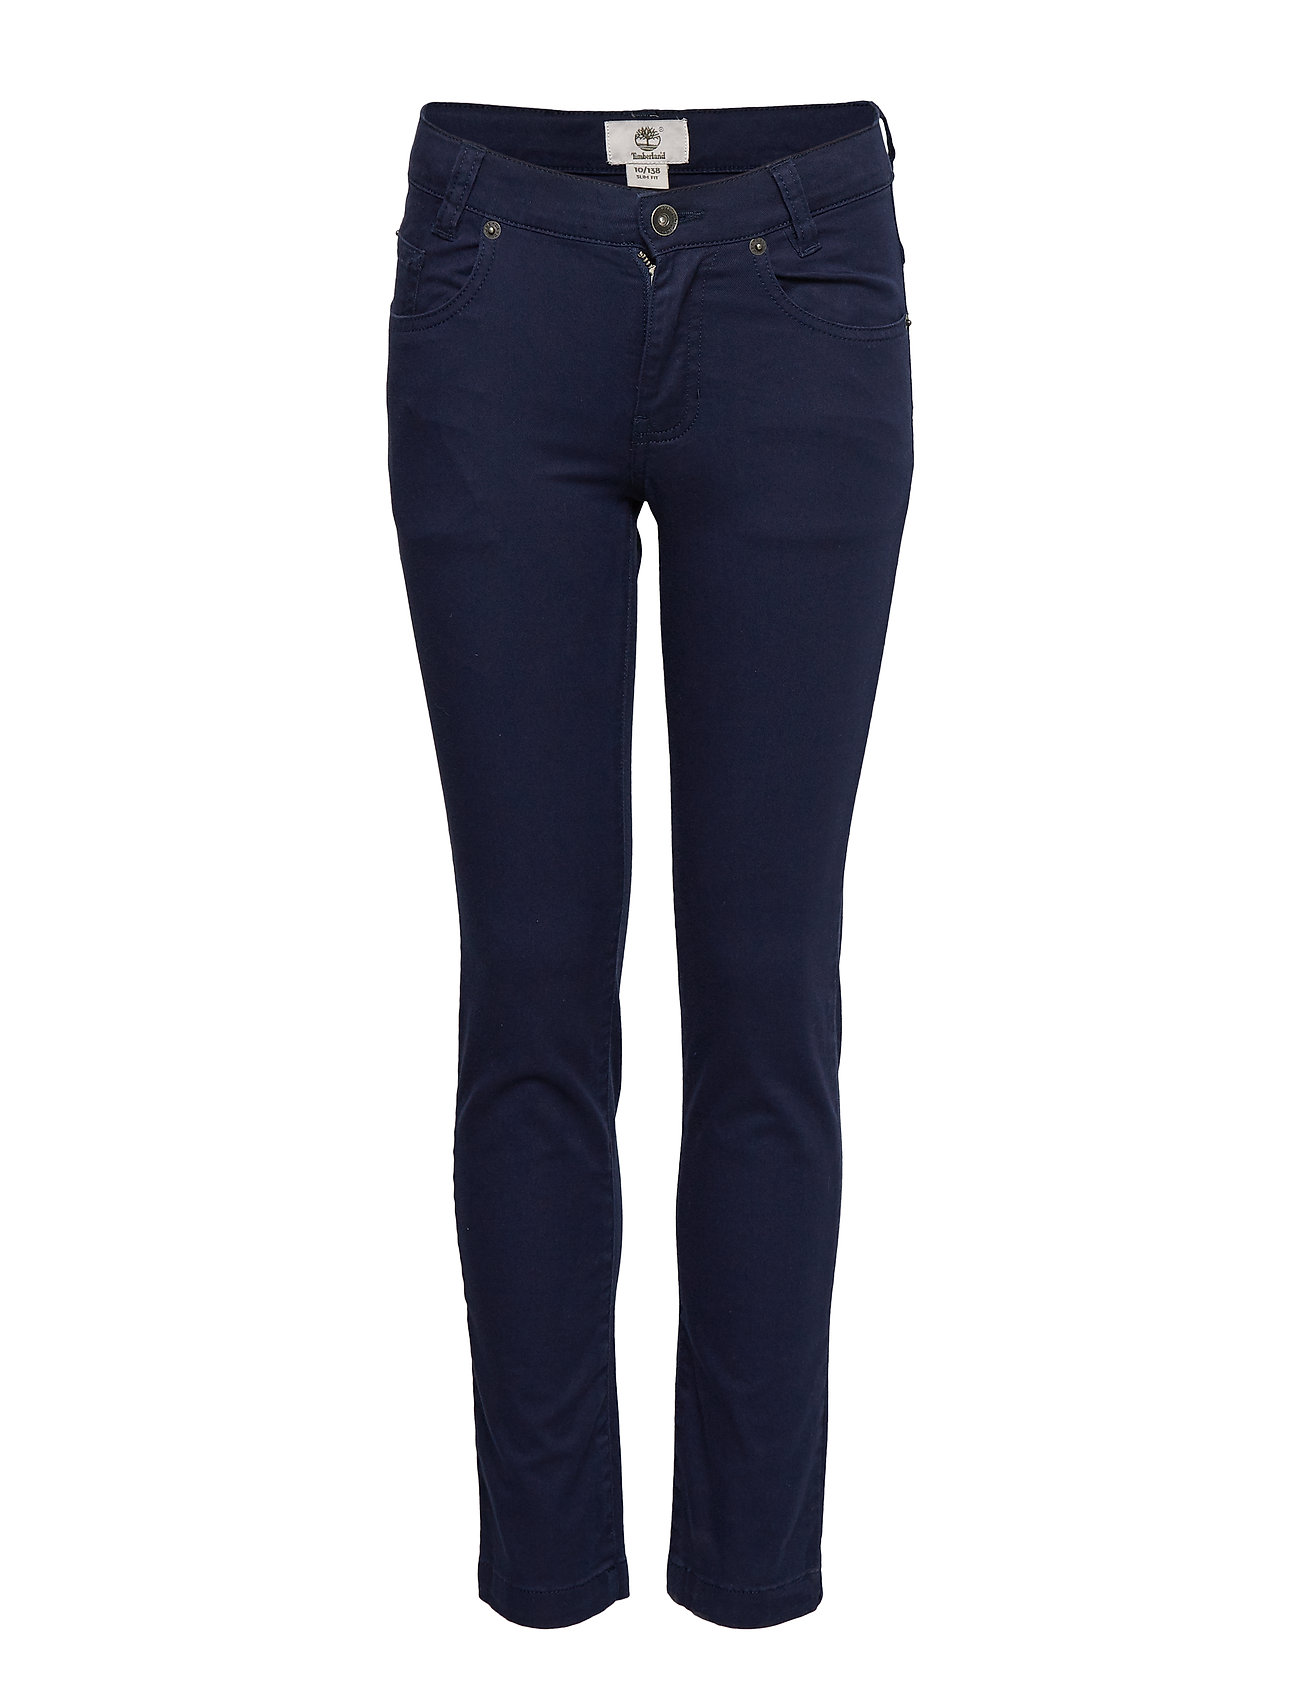 Timberland TROUSERS 5 POCKET - NAVY